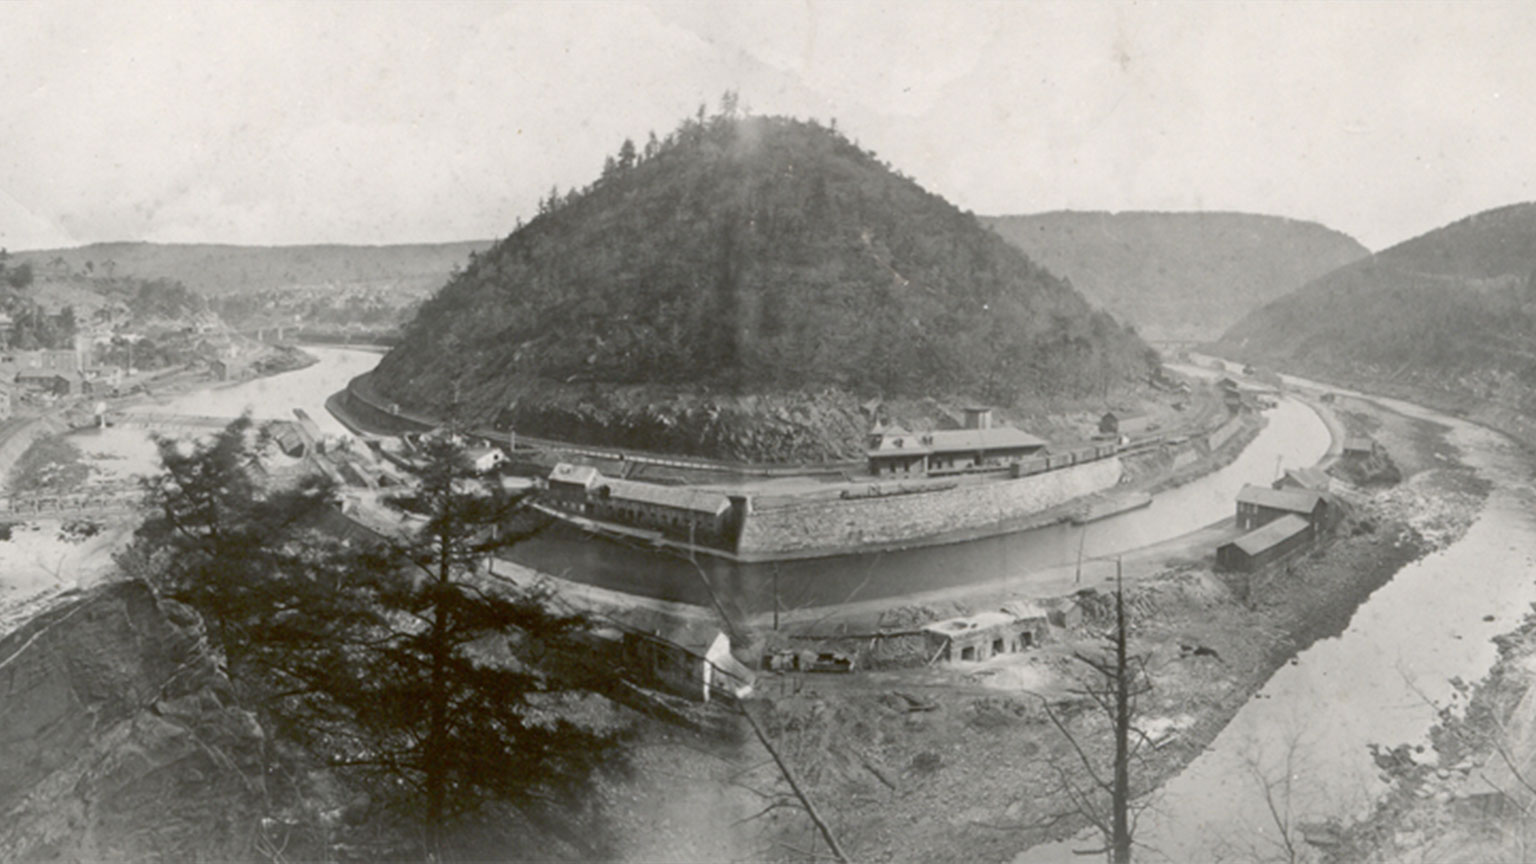 This picture does a nice job of illustrating how prominent Bear Mountain was.